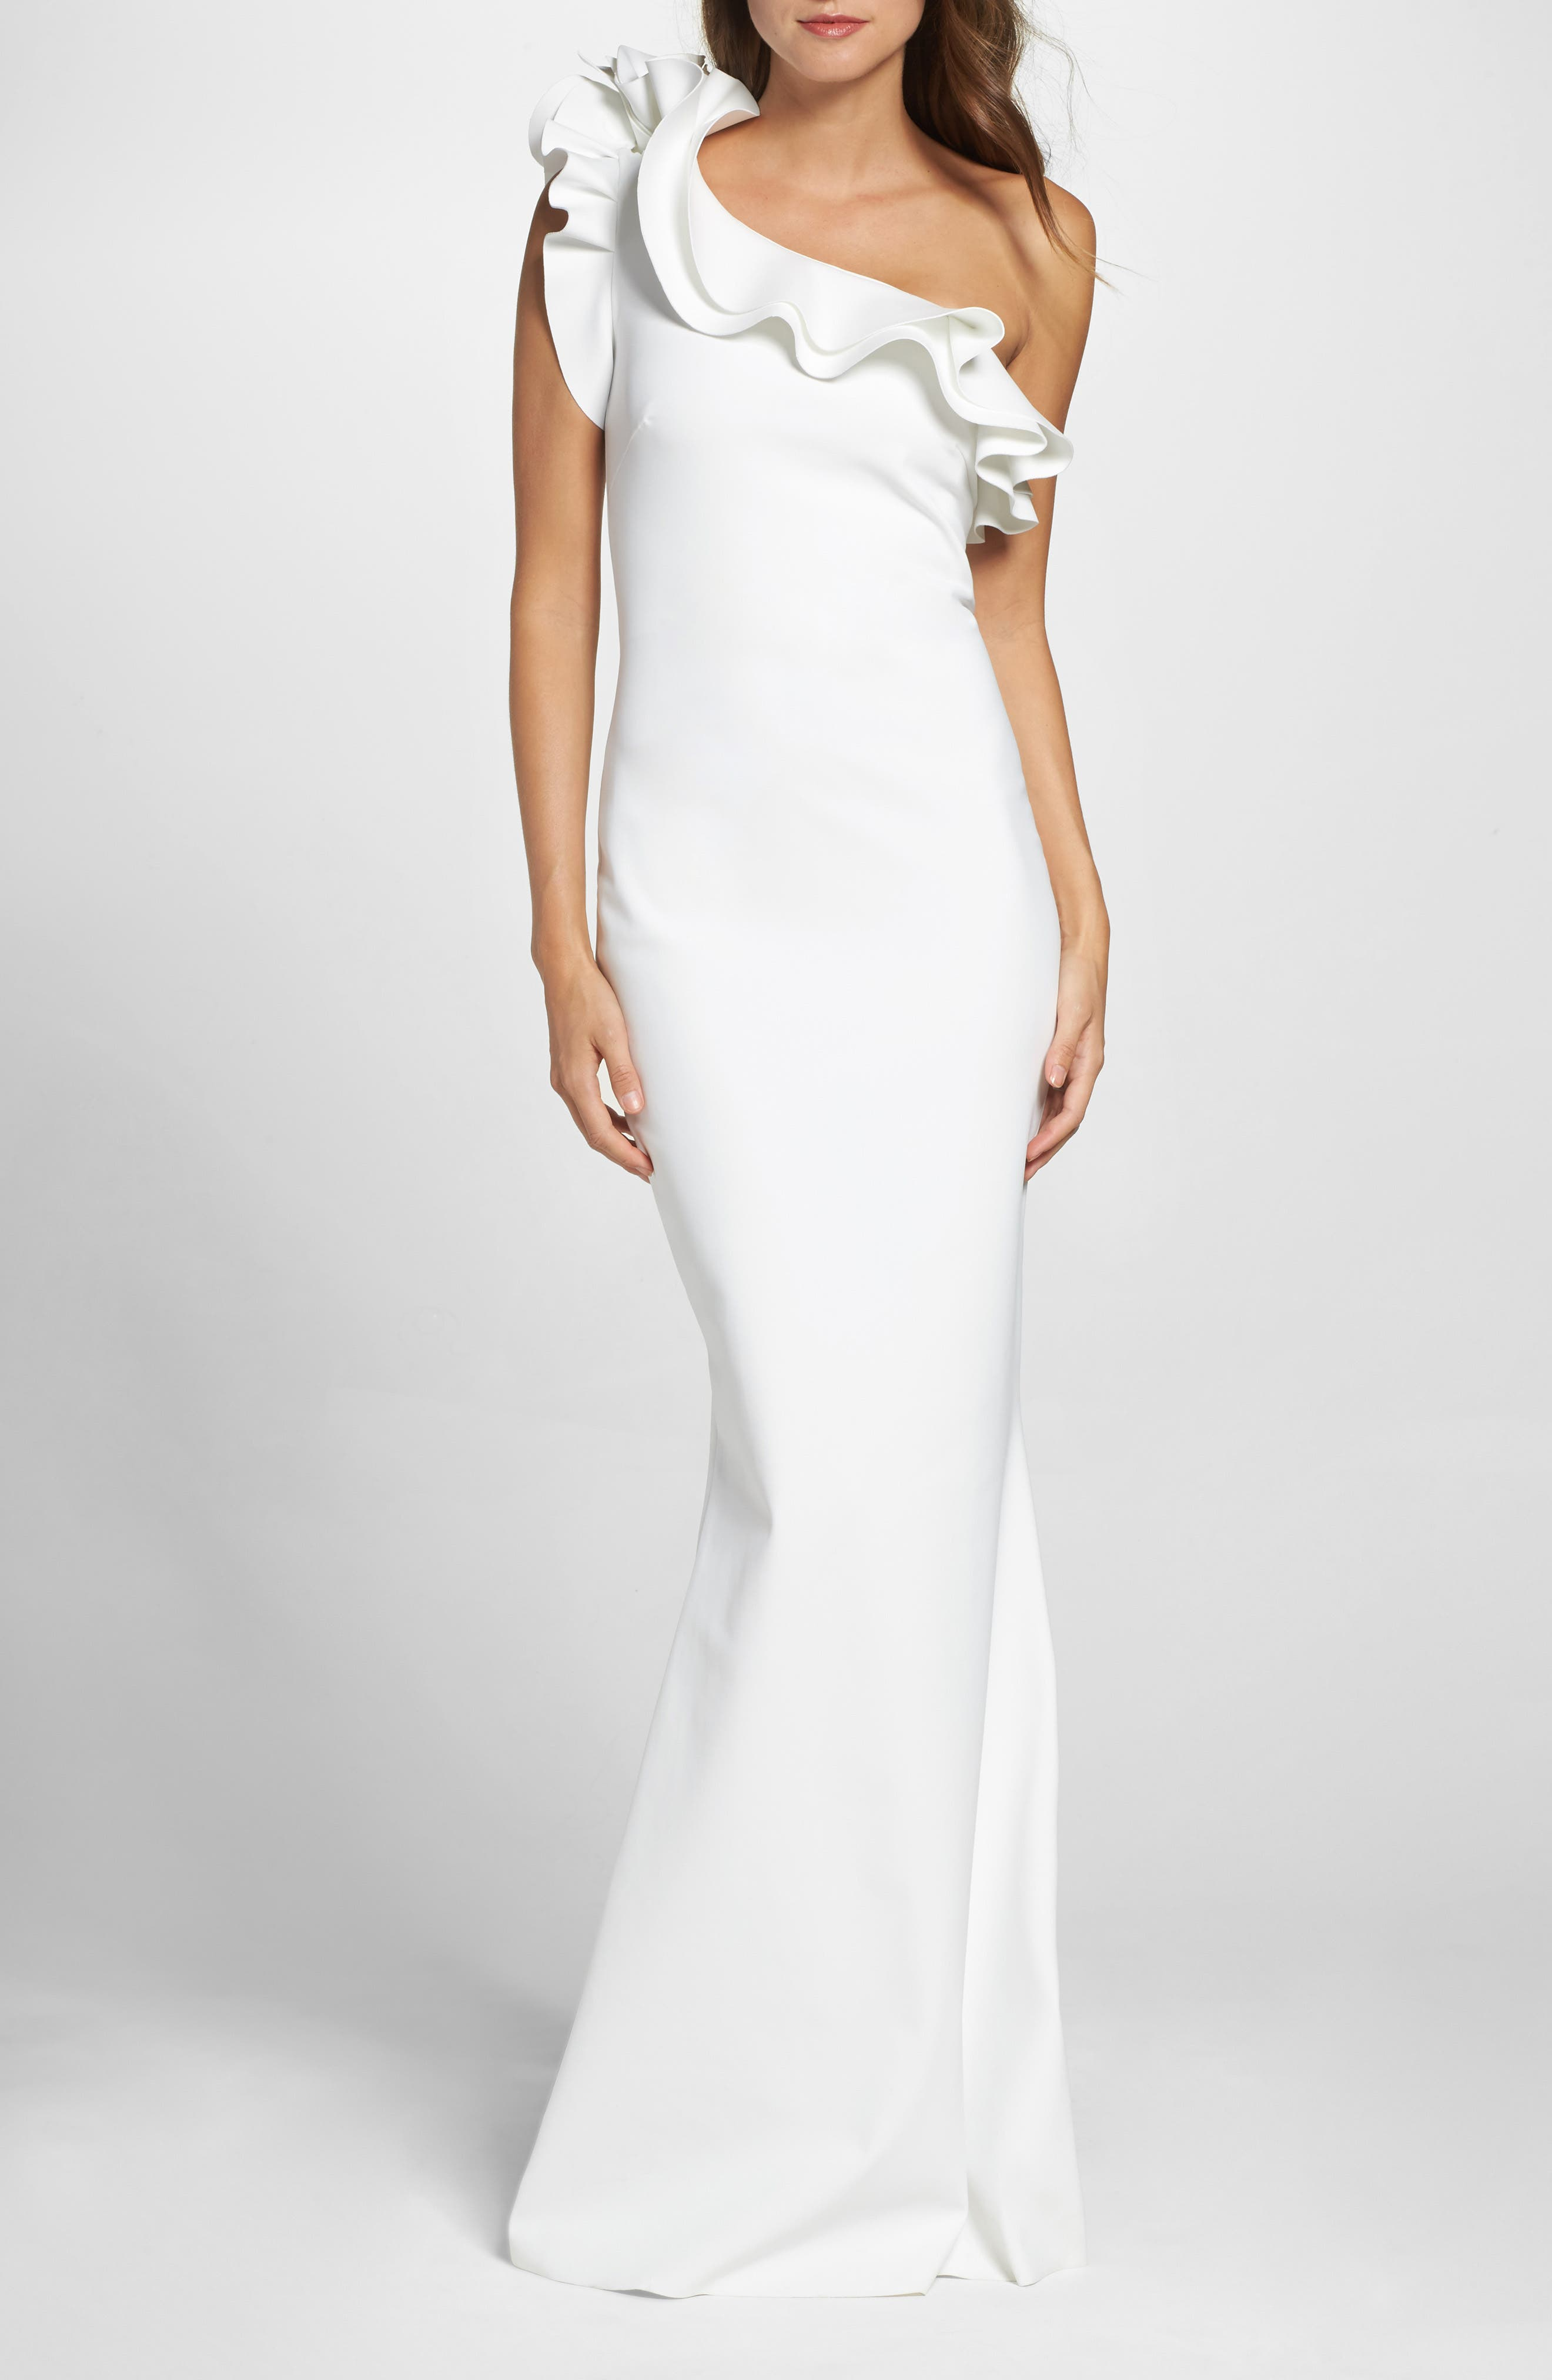 Elisir Ruffle One-Shoulder Gown,                             Main thumbnail 1, color,                             White